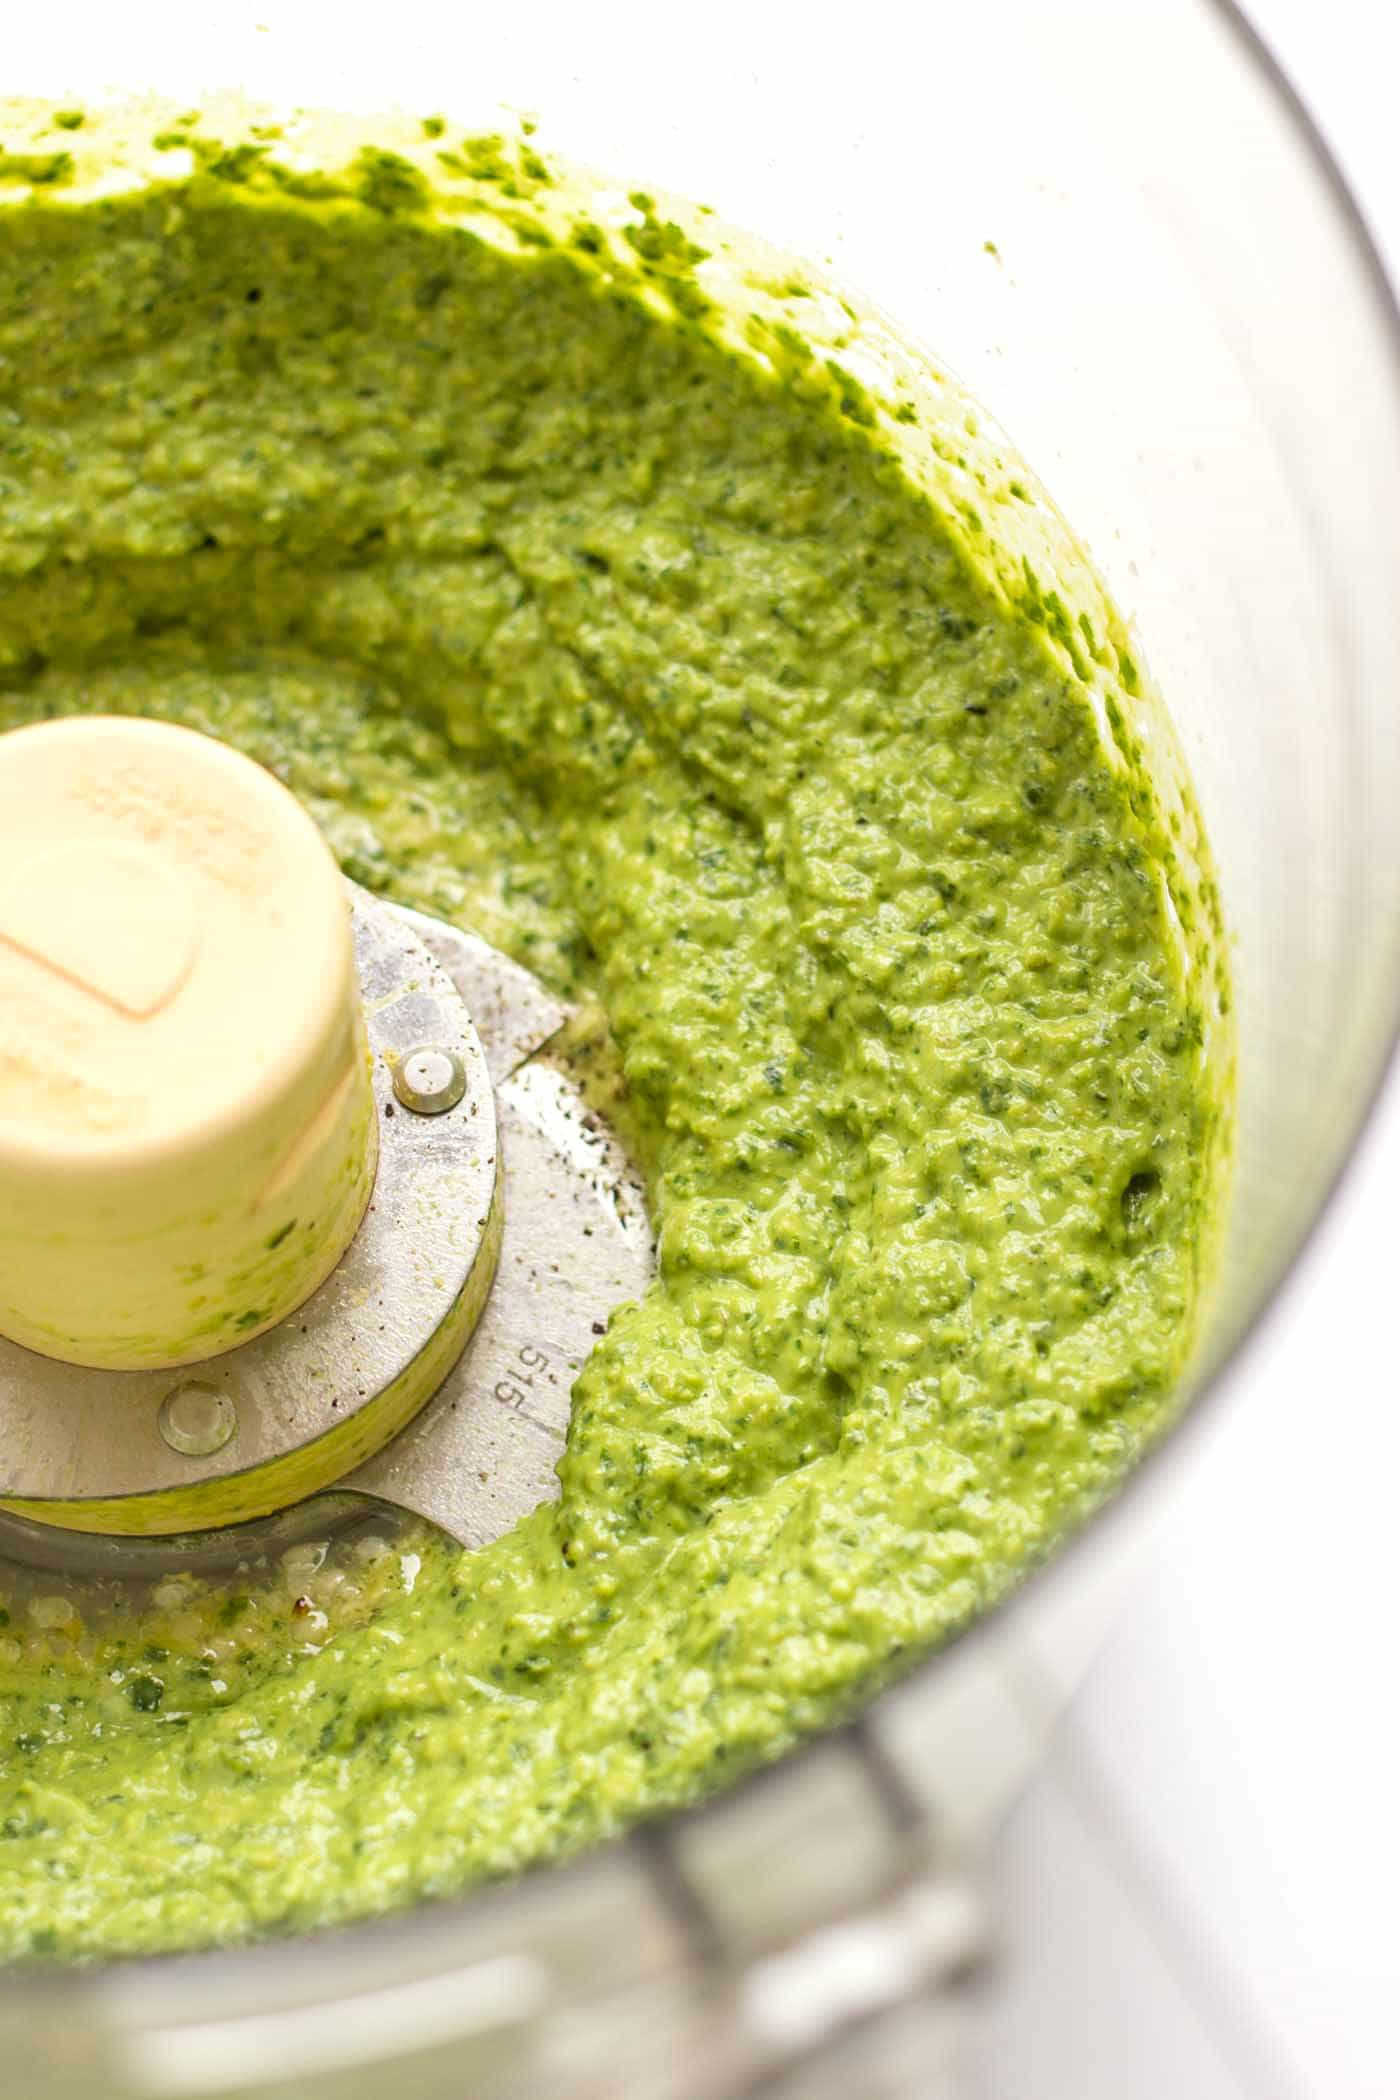 This VEGAN pesto is made with hemp seeds and avocado so it's flavorful AND super healthy!